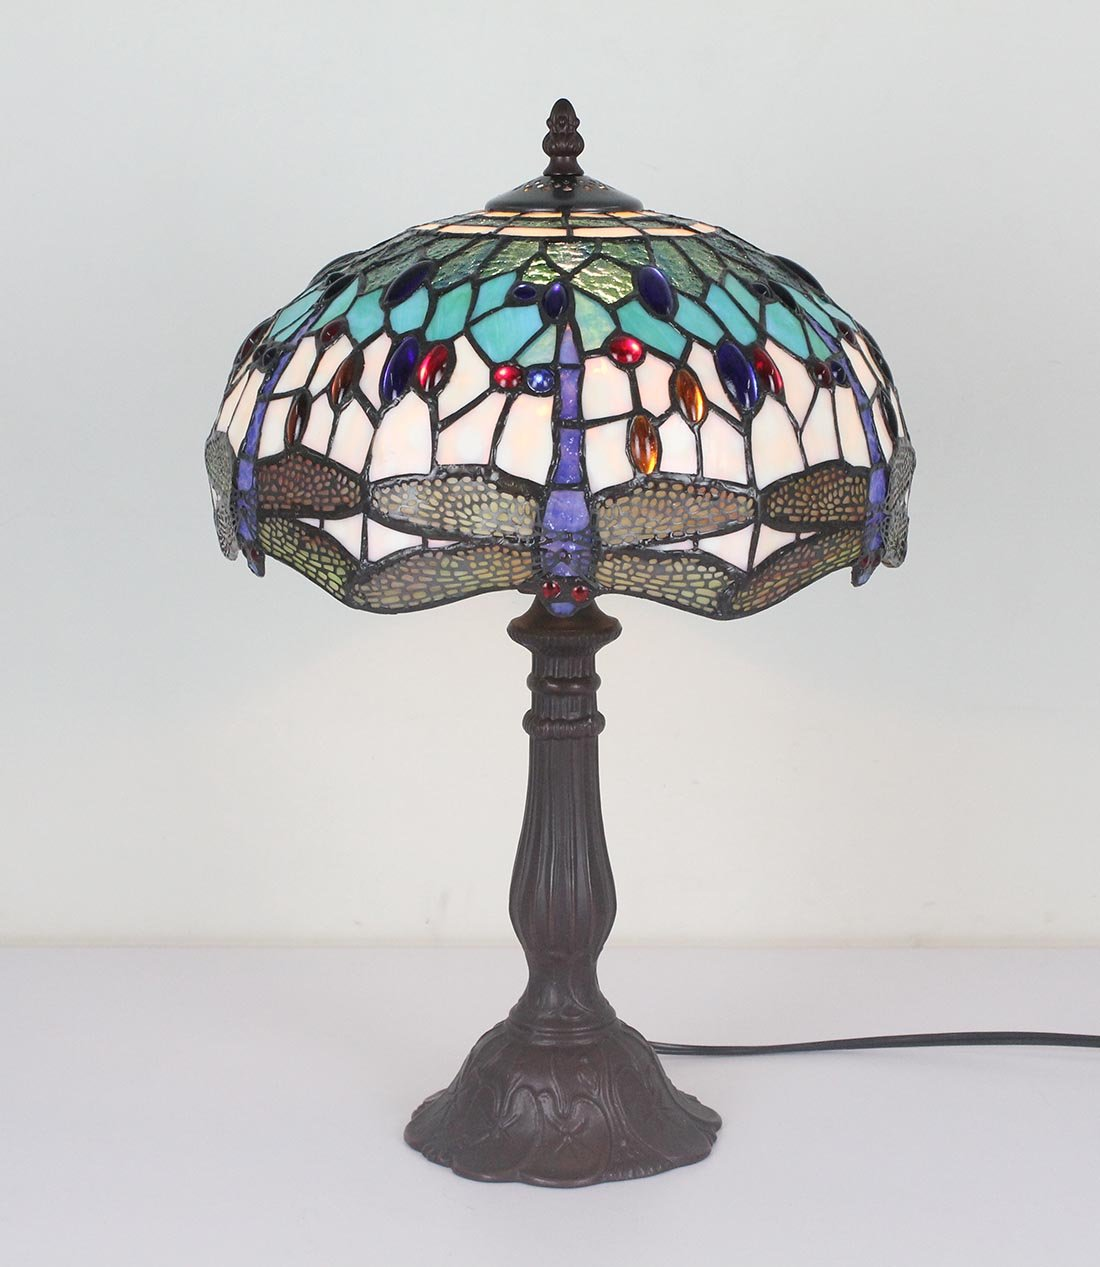 BIEYE L11402 Dragonfly Tiffany Style Stained Glass Table Lamp with 12 Inch Wide 6 Dragonflies Lampshade and Metal Base, 19 inch Tall